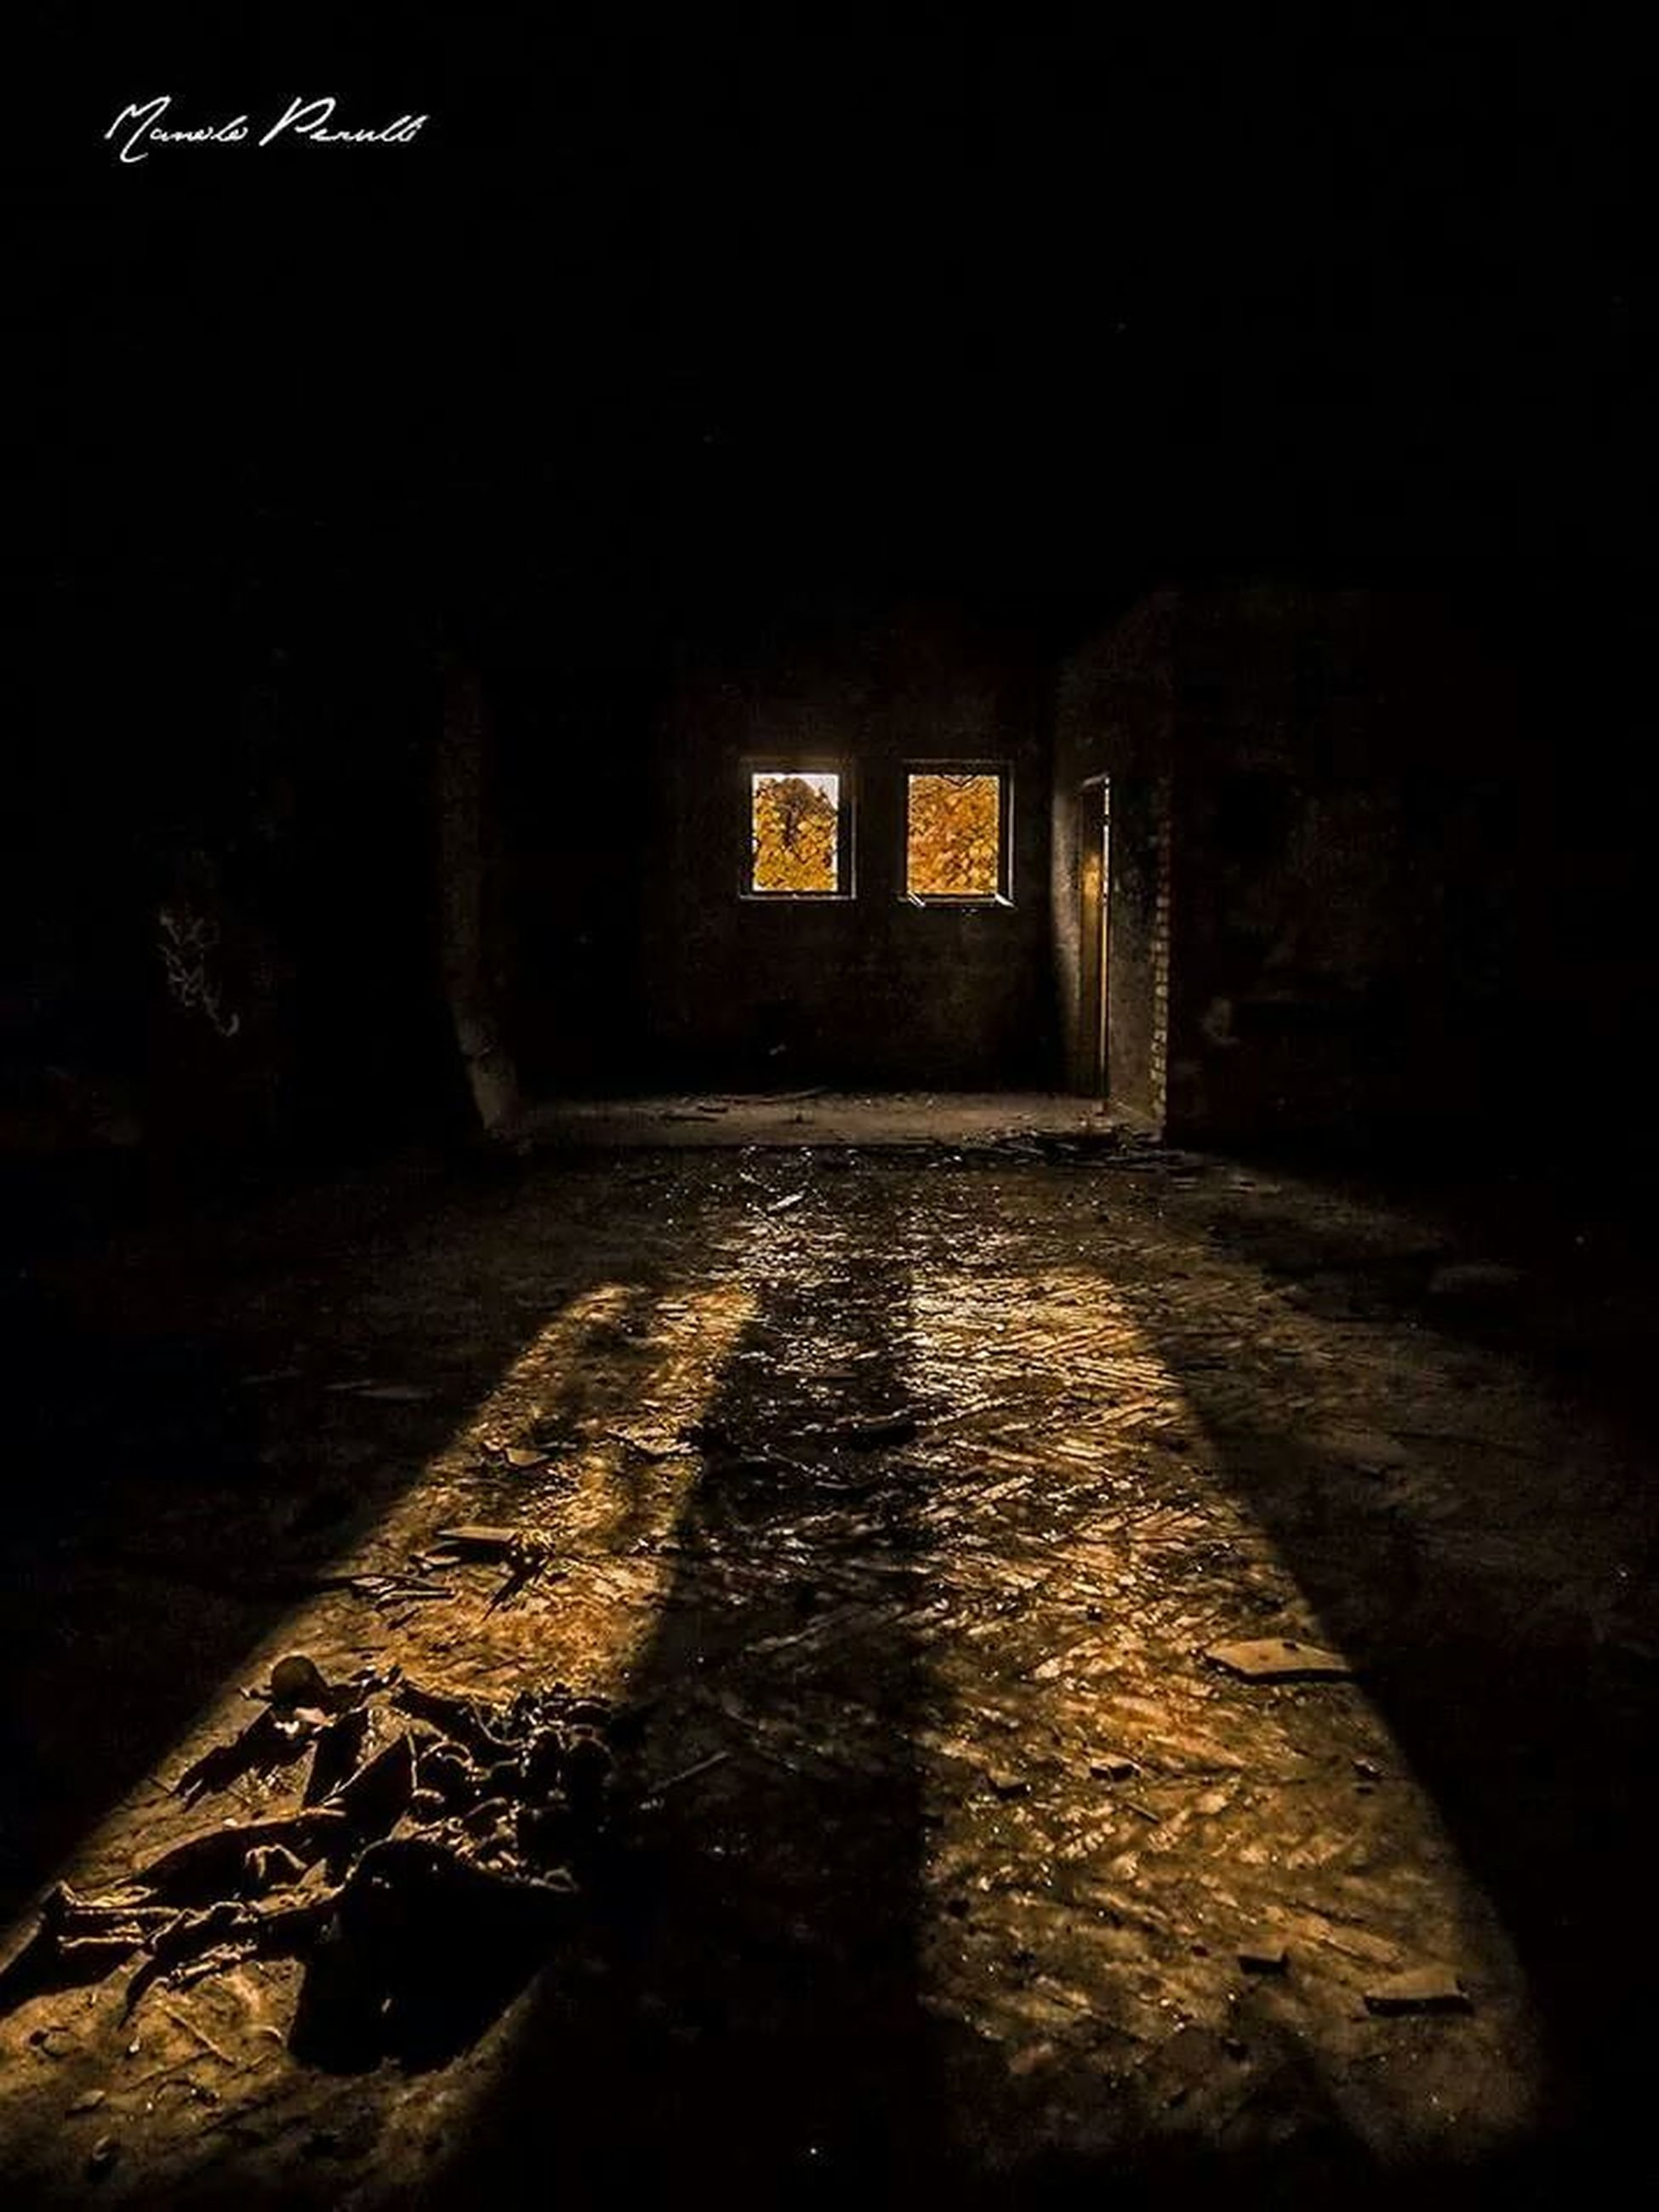 architecture, built structure, building exterior, night, abandoned, the way forward, wall - building feature, dark, old, building, house, illuminated, obsolete, brick wall, street, no people, window, damaged, shadow, outdoors